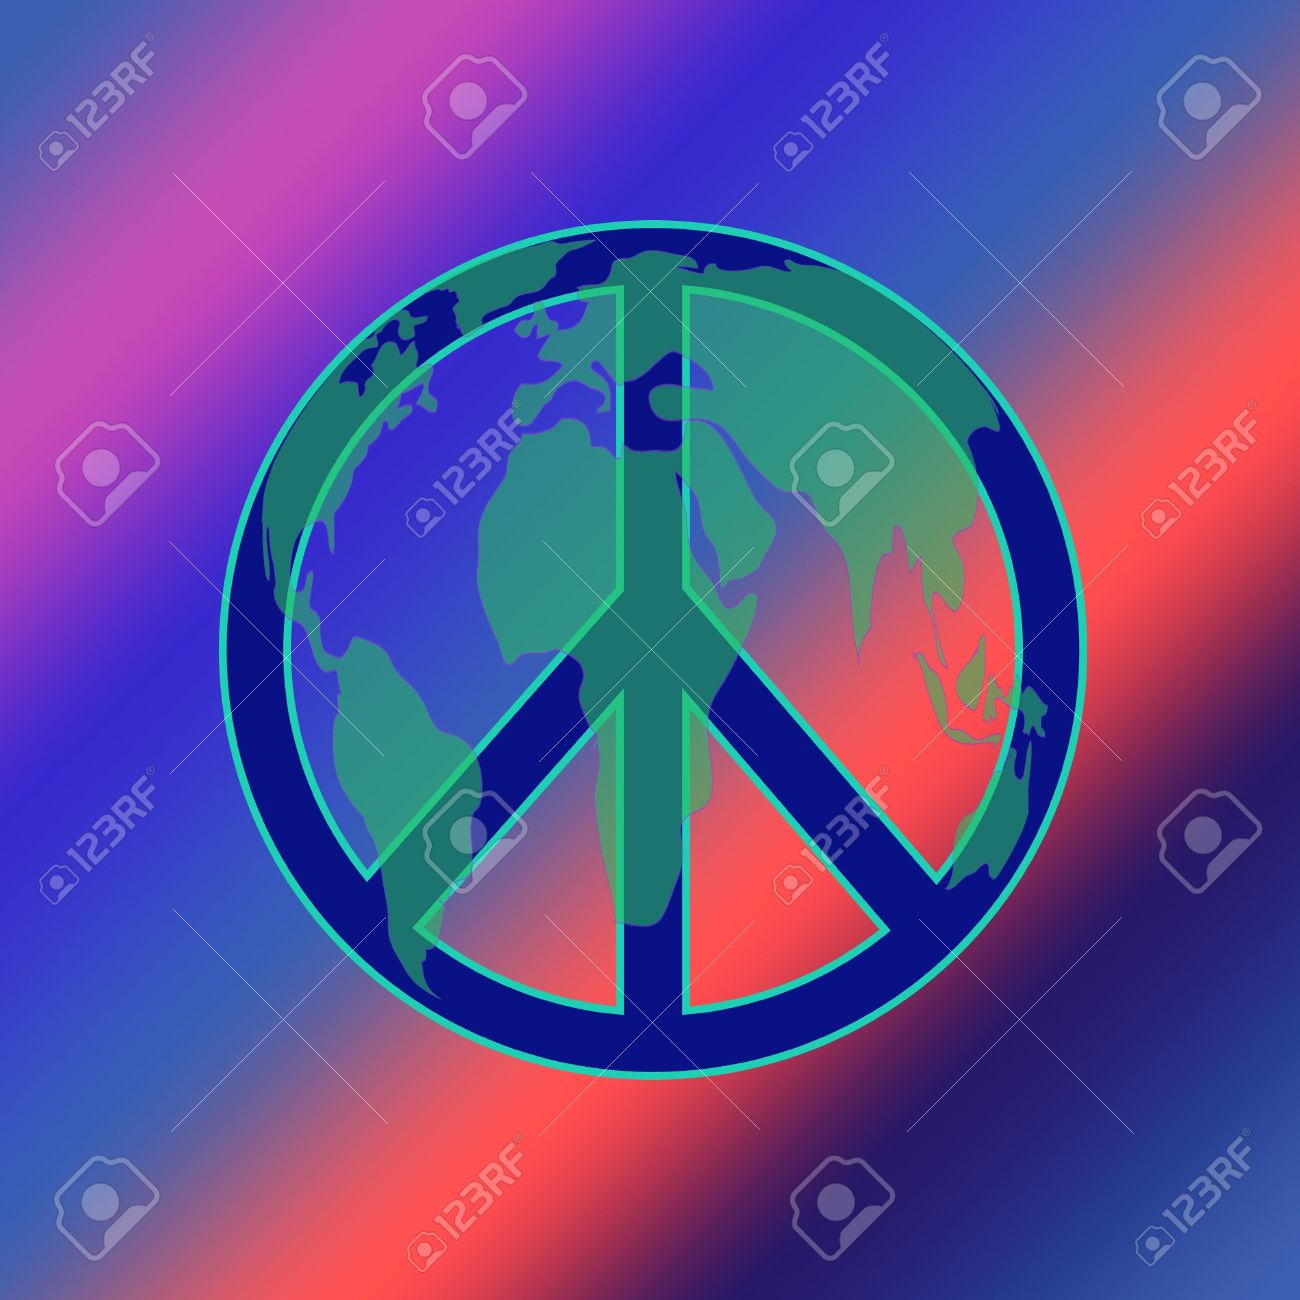 Peace symbol layered with a map of the world